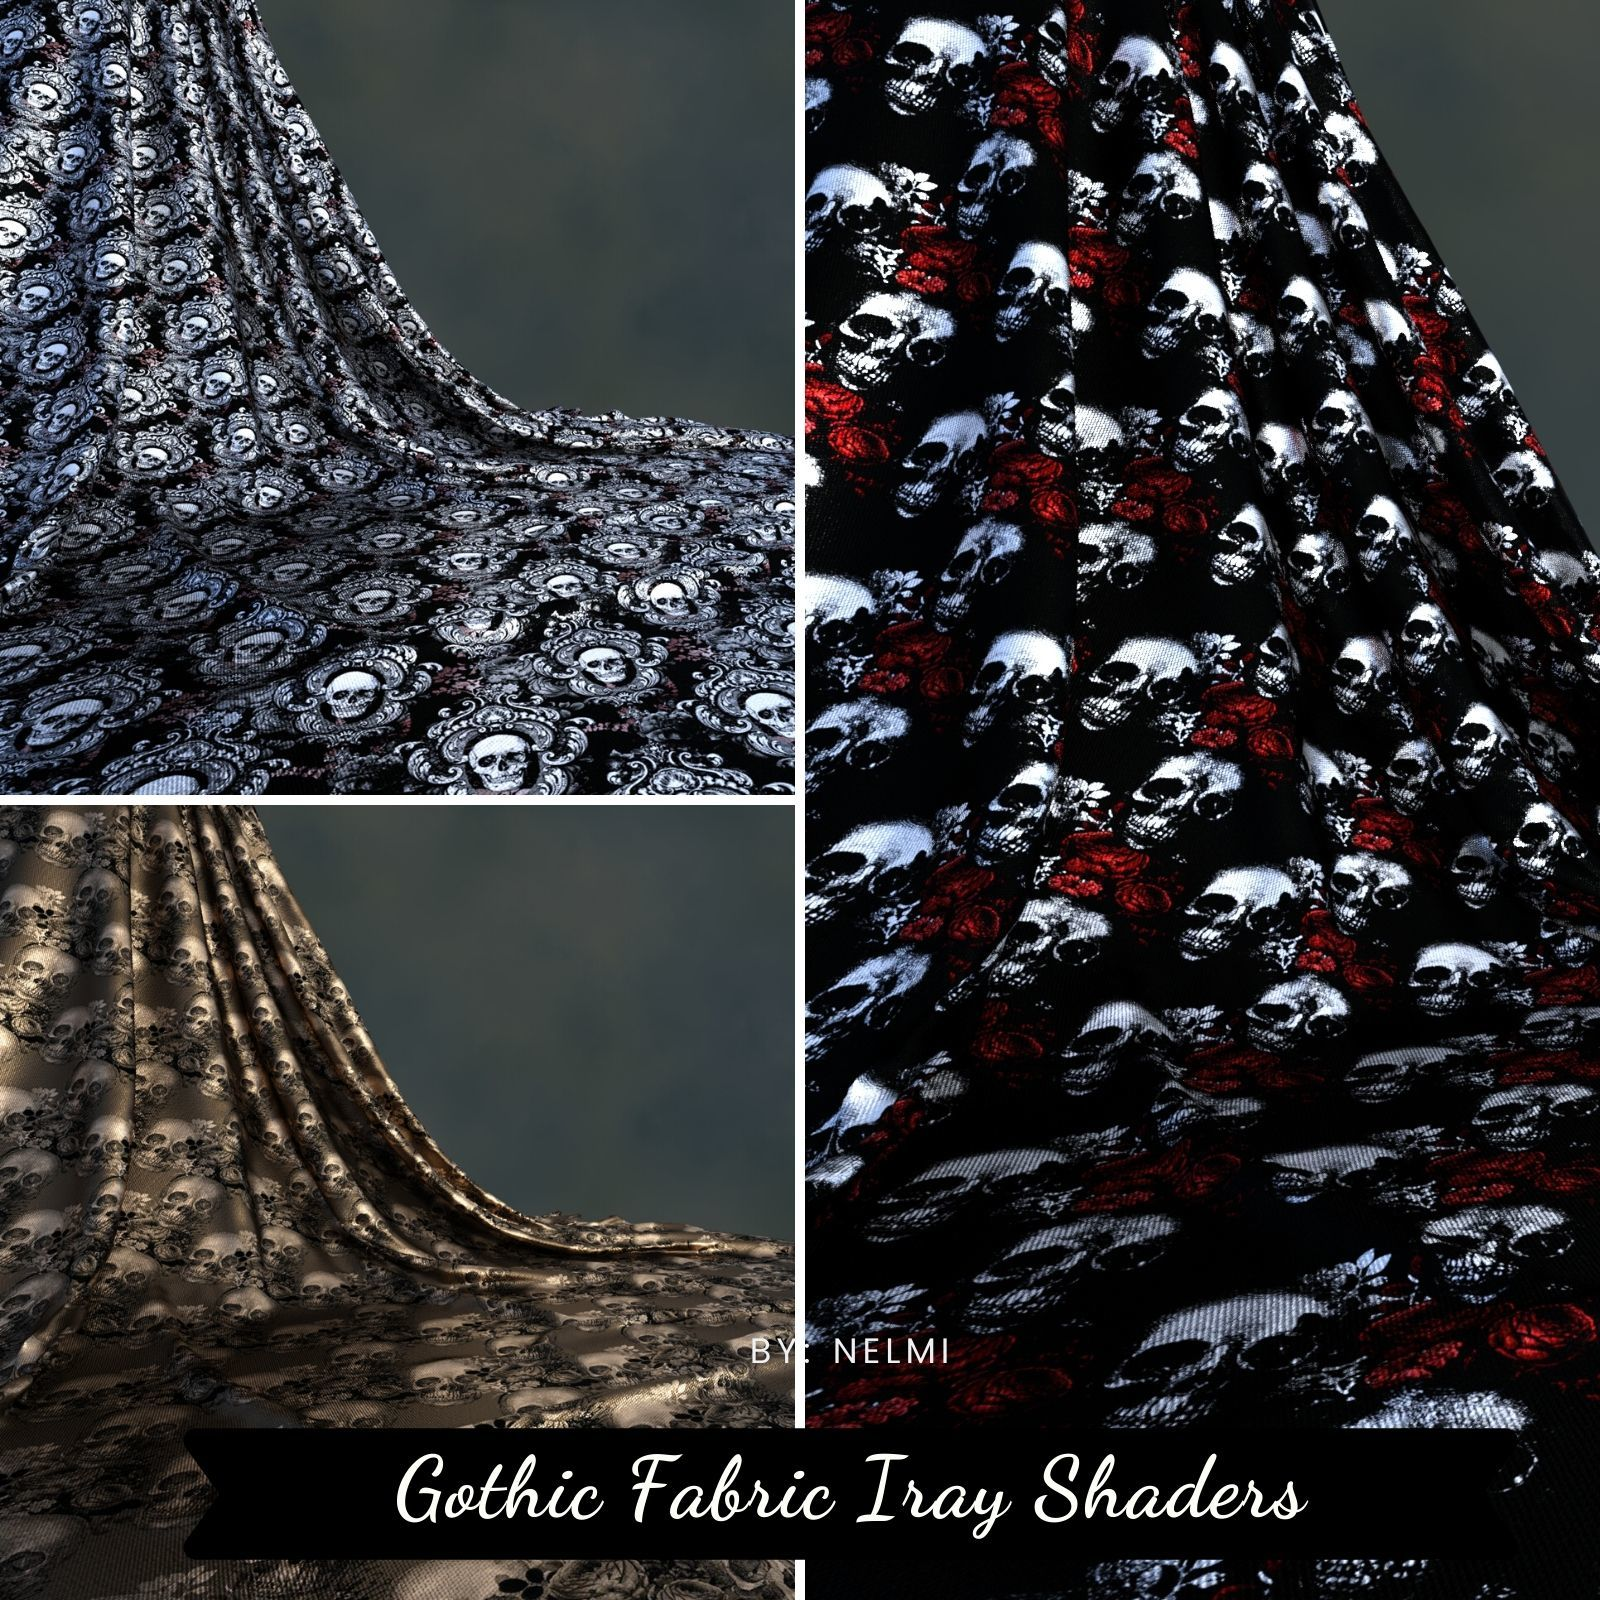 Gothic Fabric Iray Shaders by nelmi